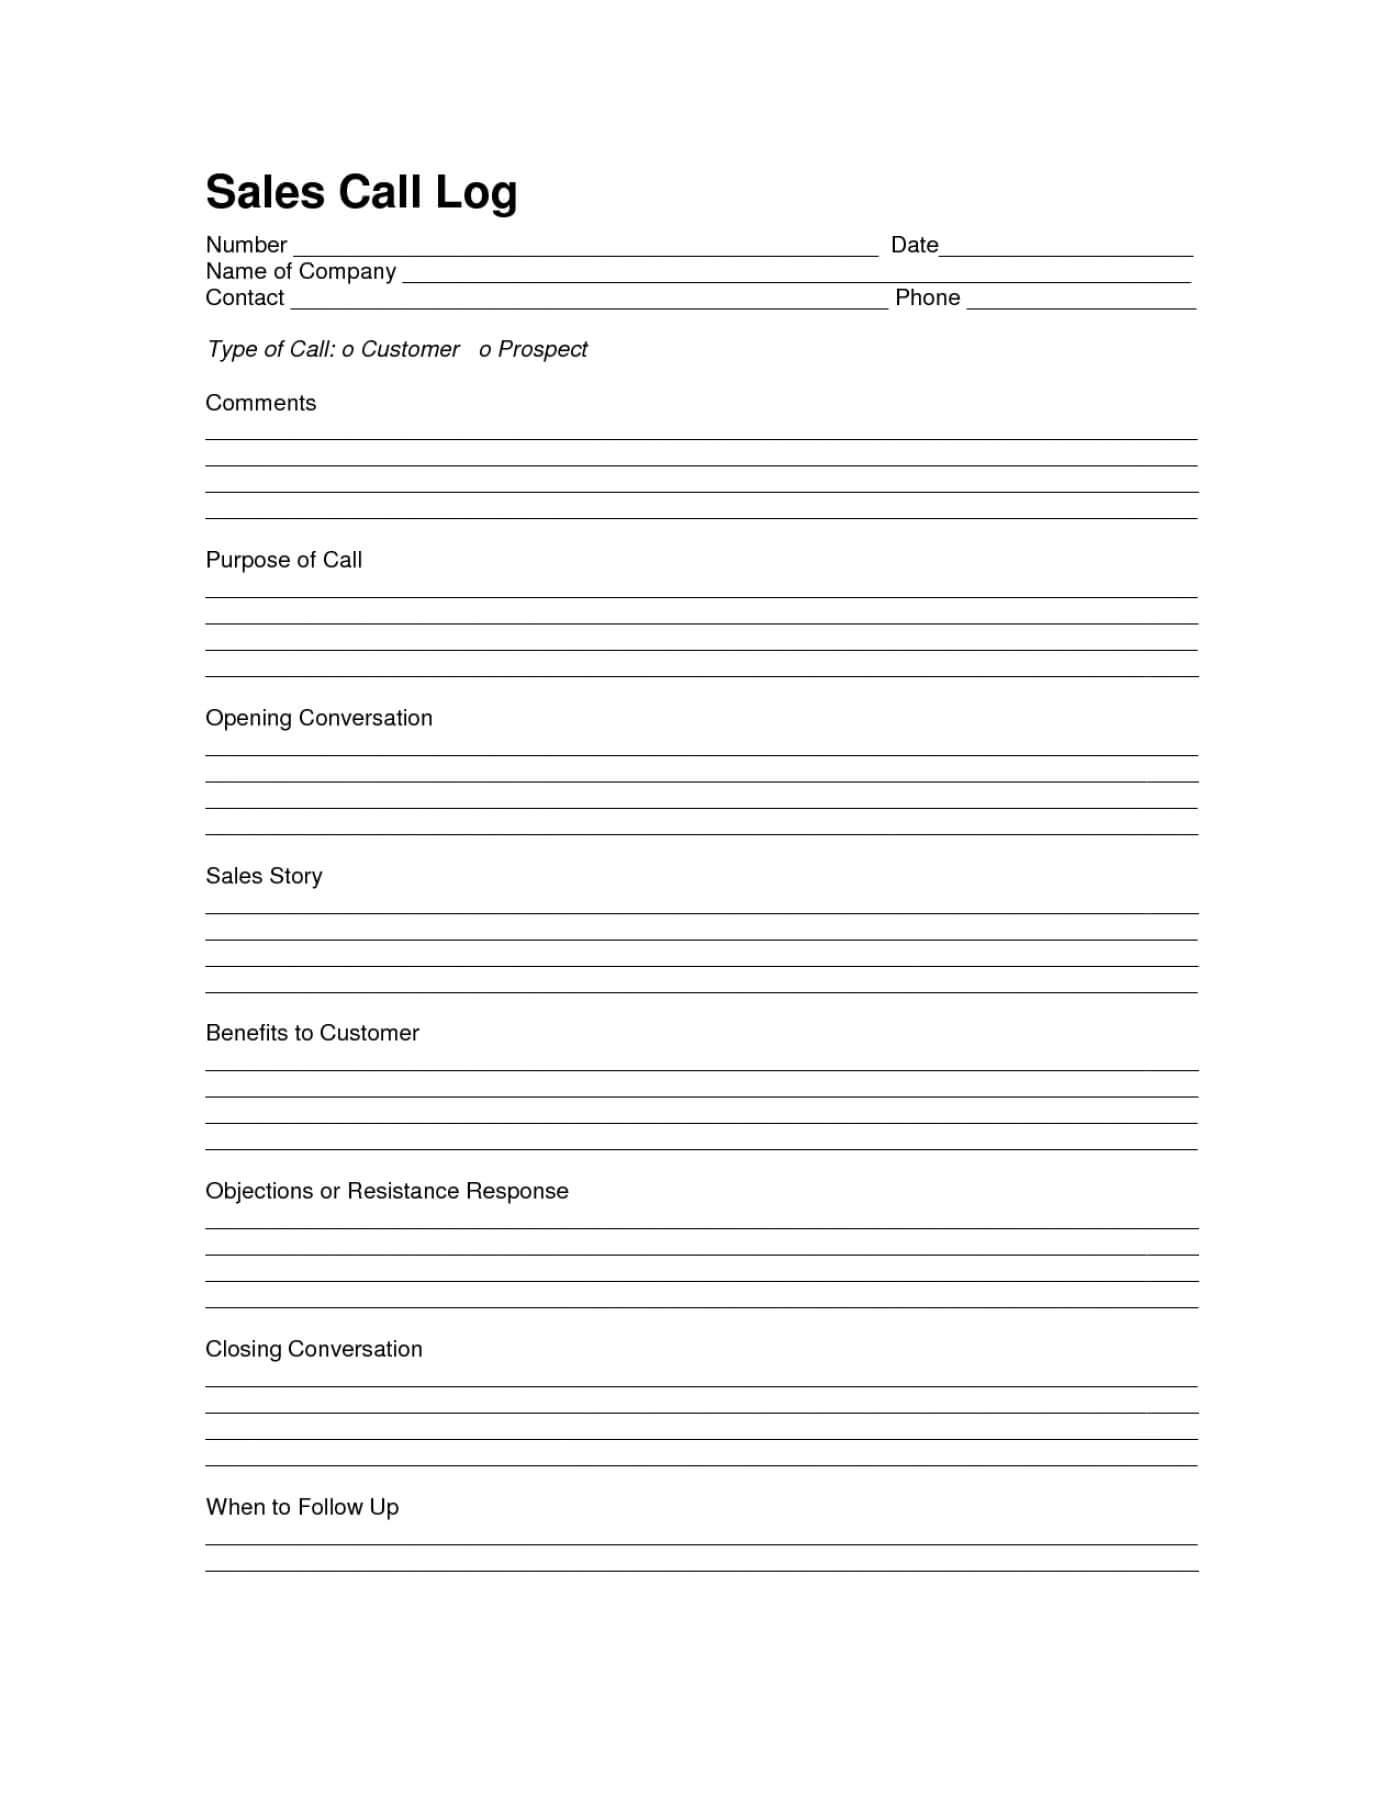 013 Sales Calls Report Template Ideas Call Wrap Up Cool In Wrap Up Report Template